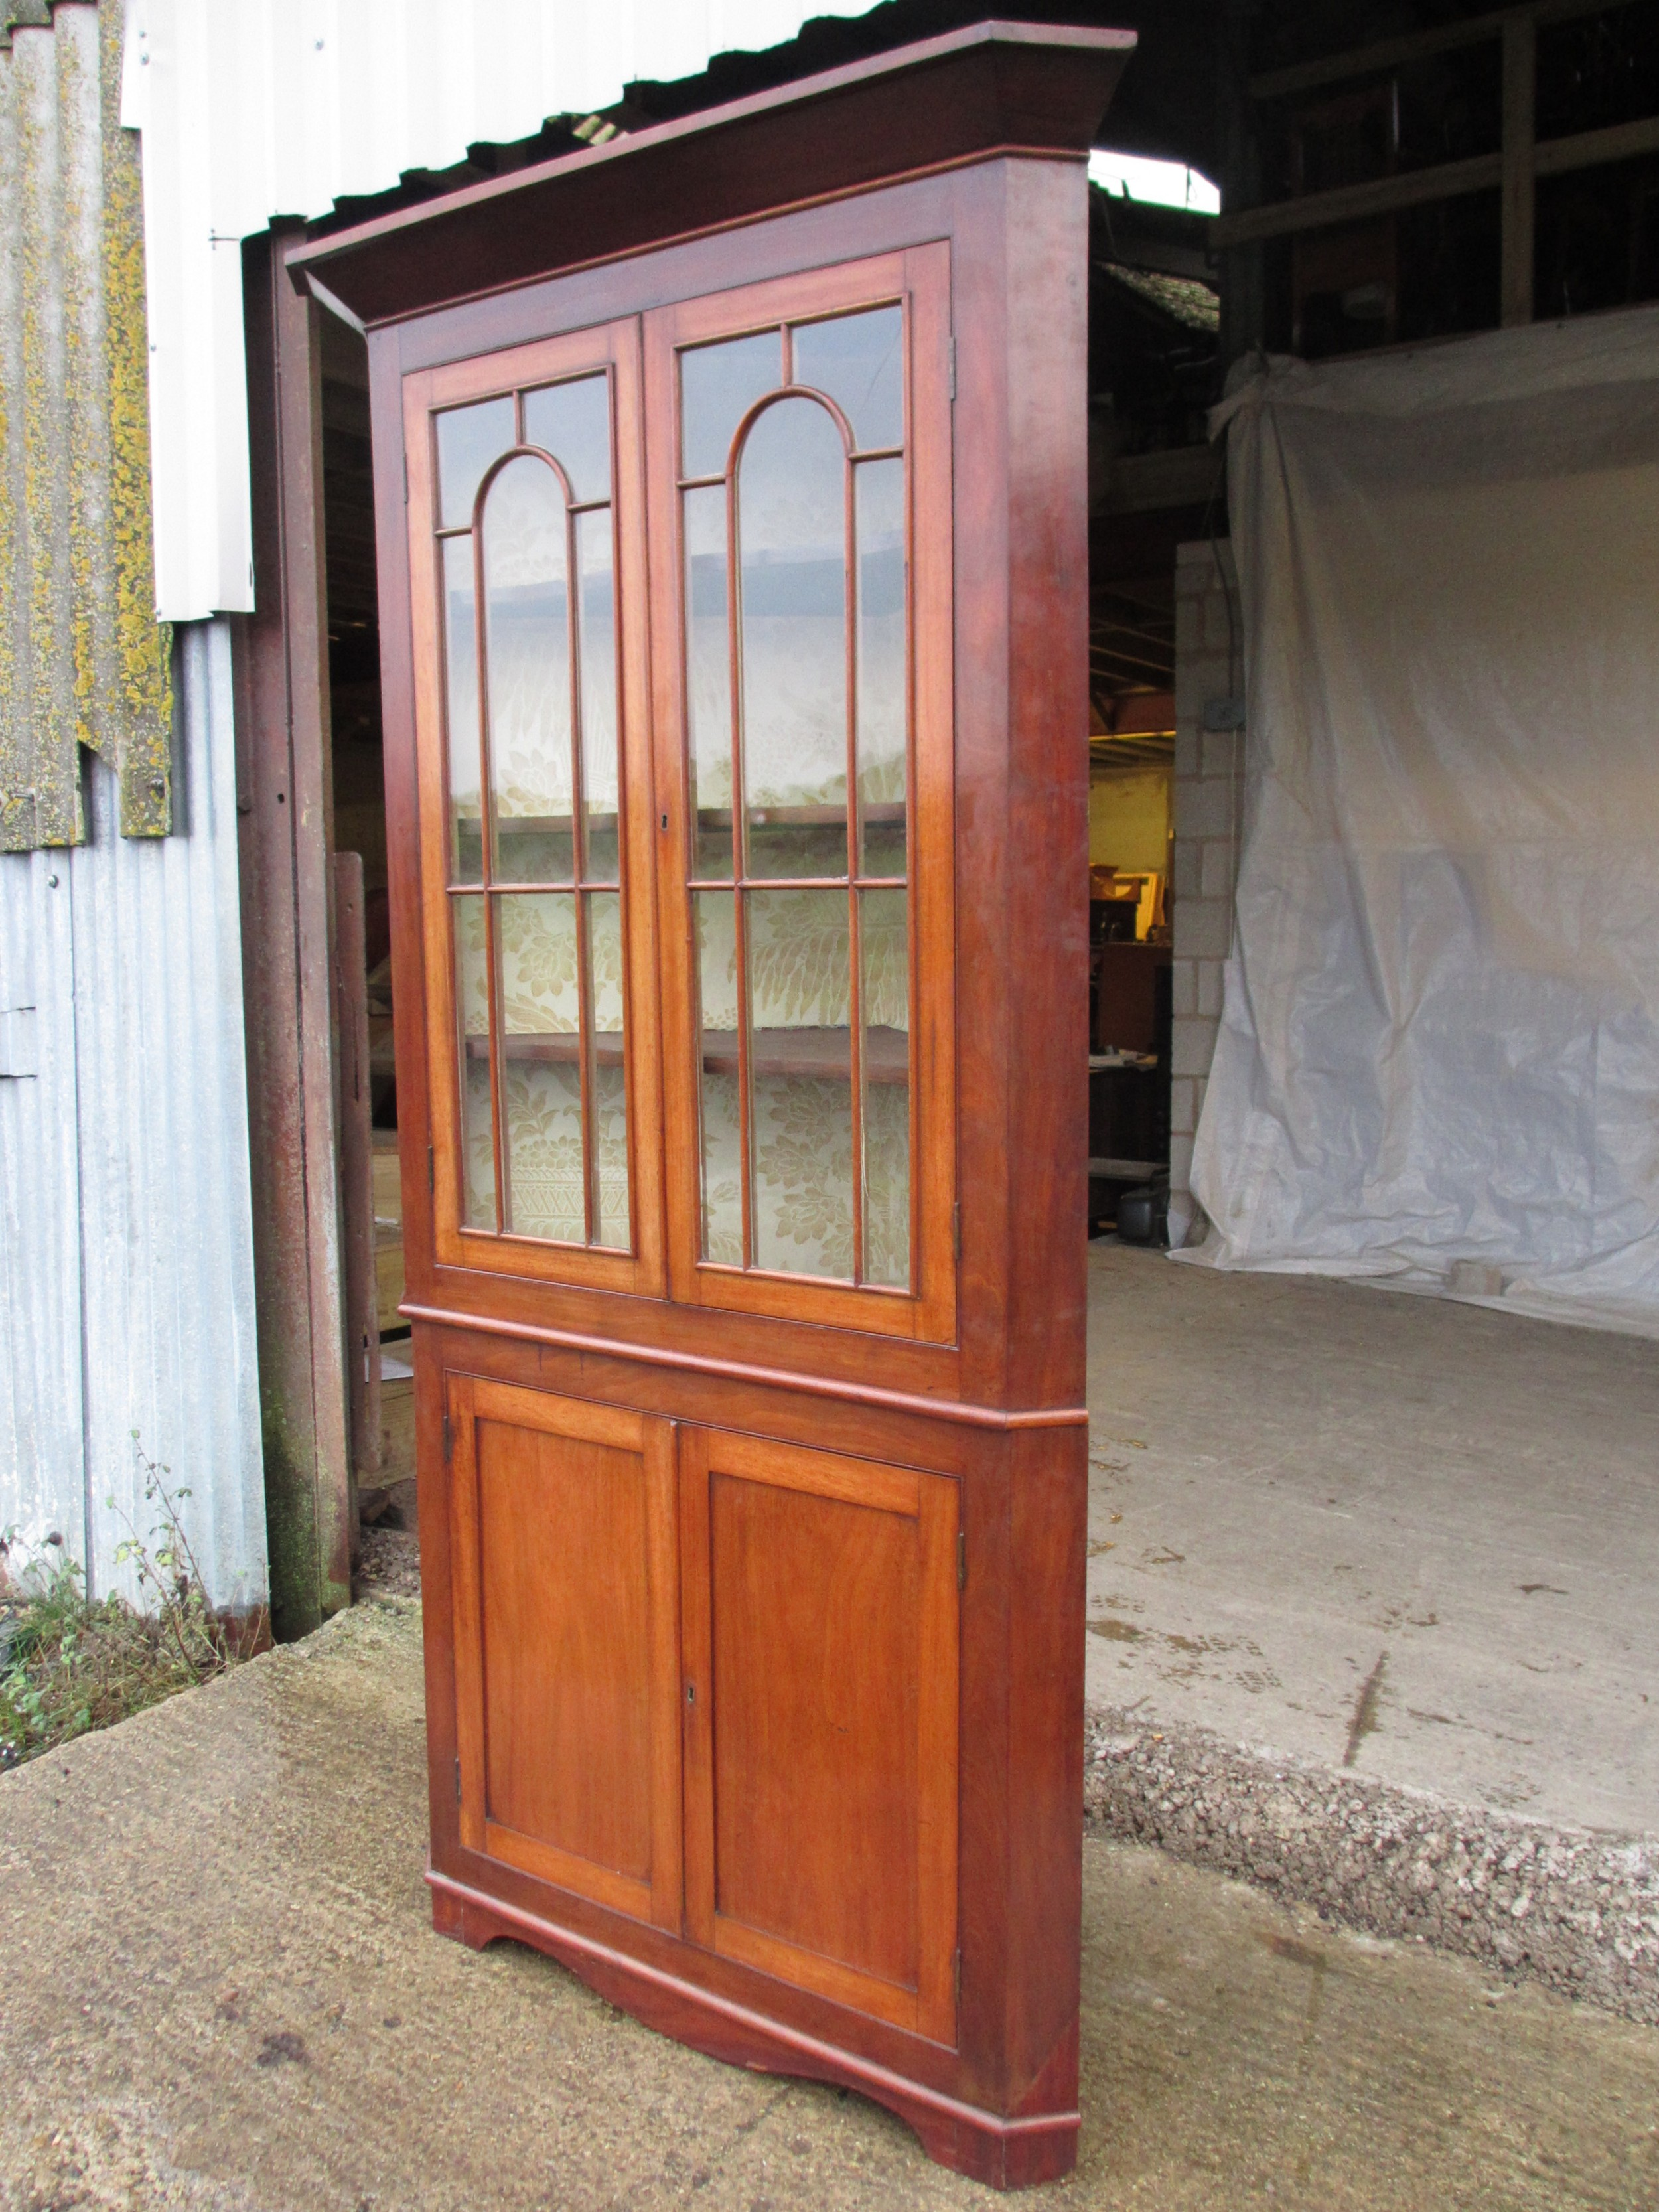 19th c mahogany glazed 2 part corner cabinet with shelves and cupboard